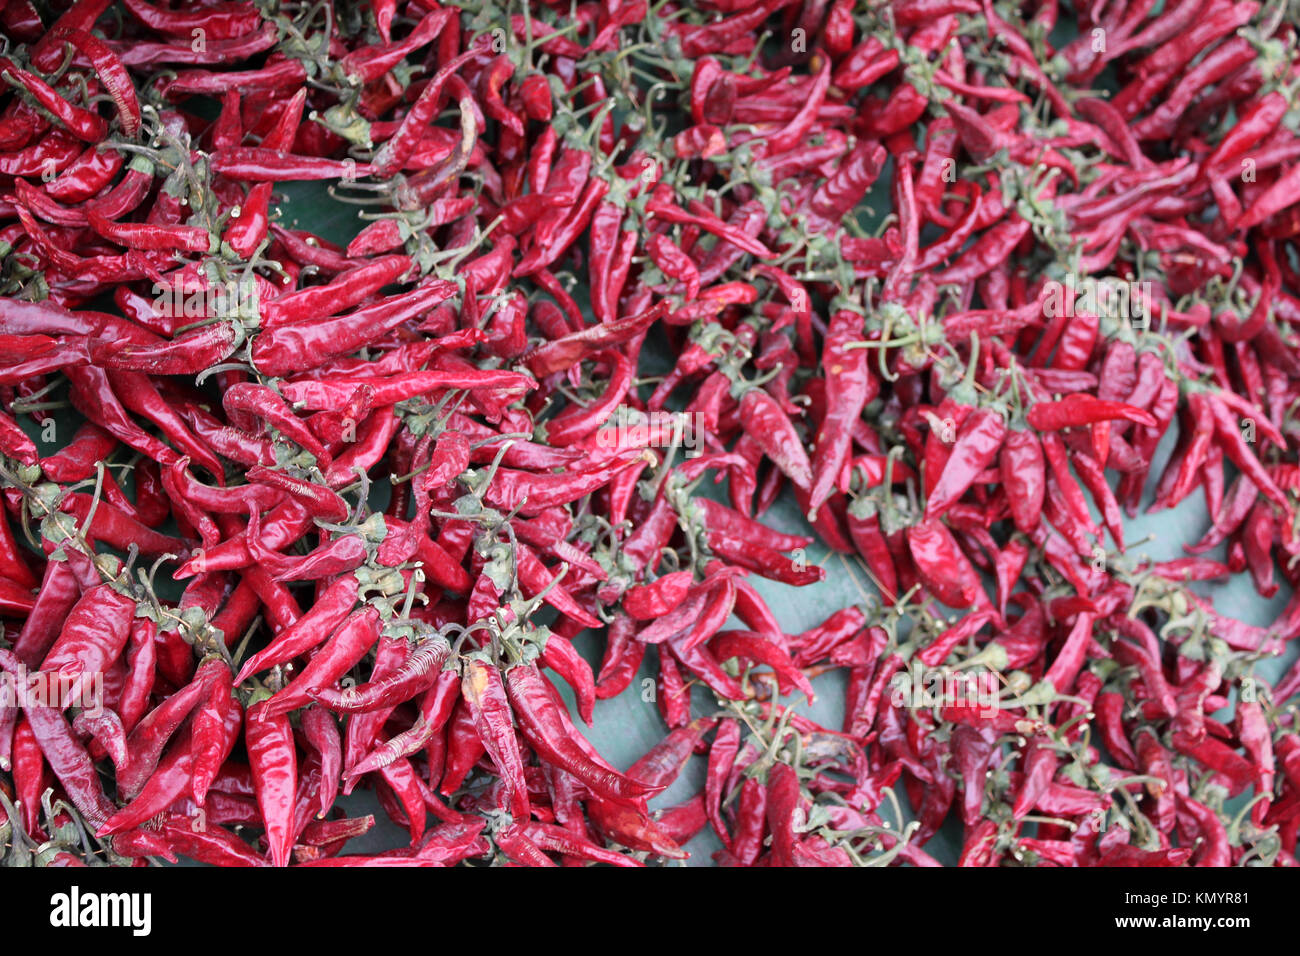 Scoville Heat Unit Stock Photos & Scoville Heat Unit Stock